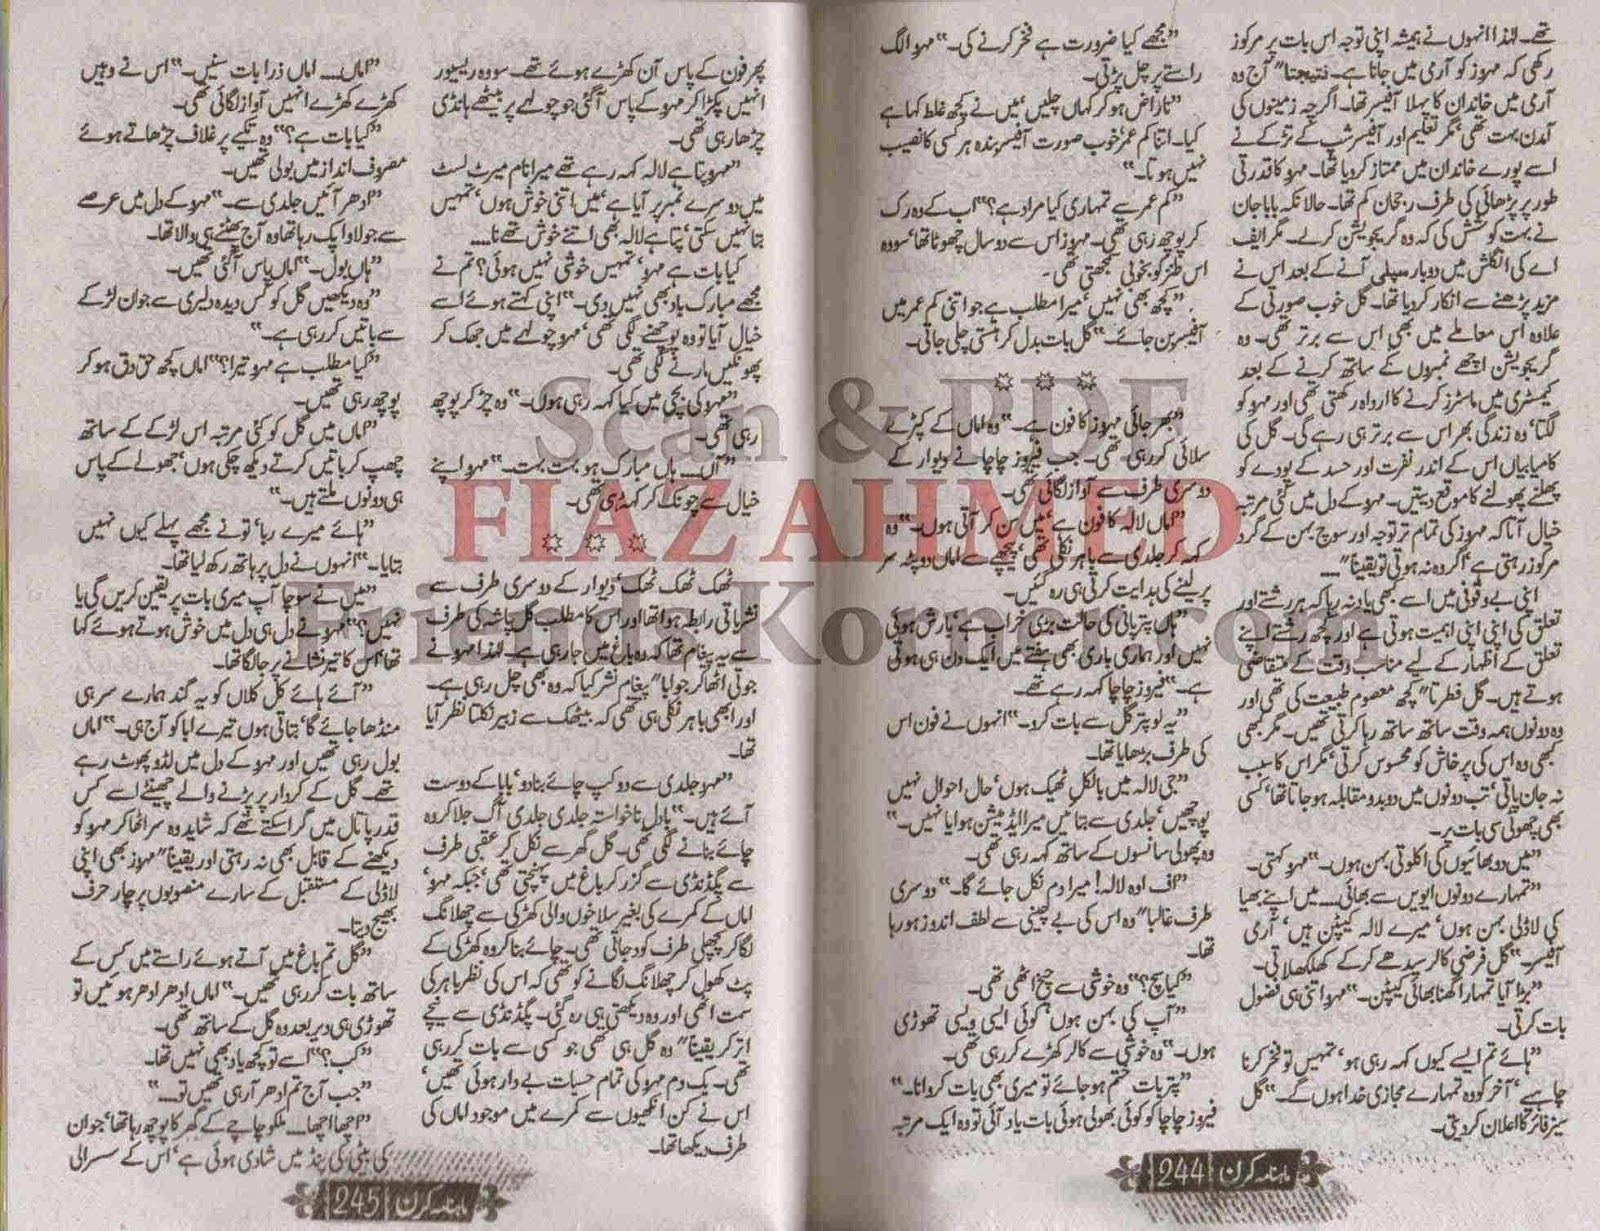 essay in urdu on yome azadi On the occasion of 14th august i am going to sanctify my thoughts for youm e azadi speech in urdu some praiseworthy days comes in the life.